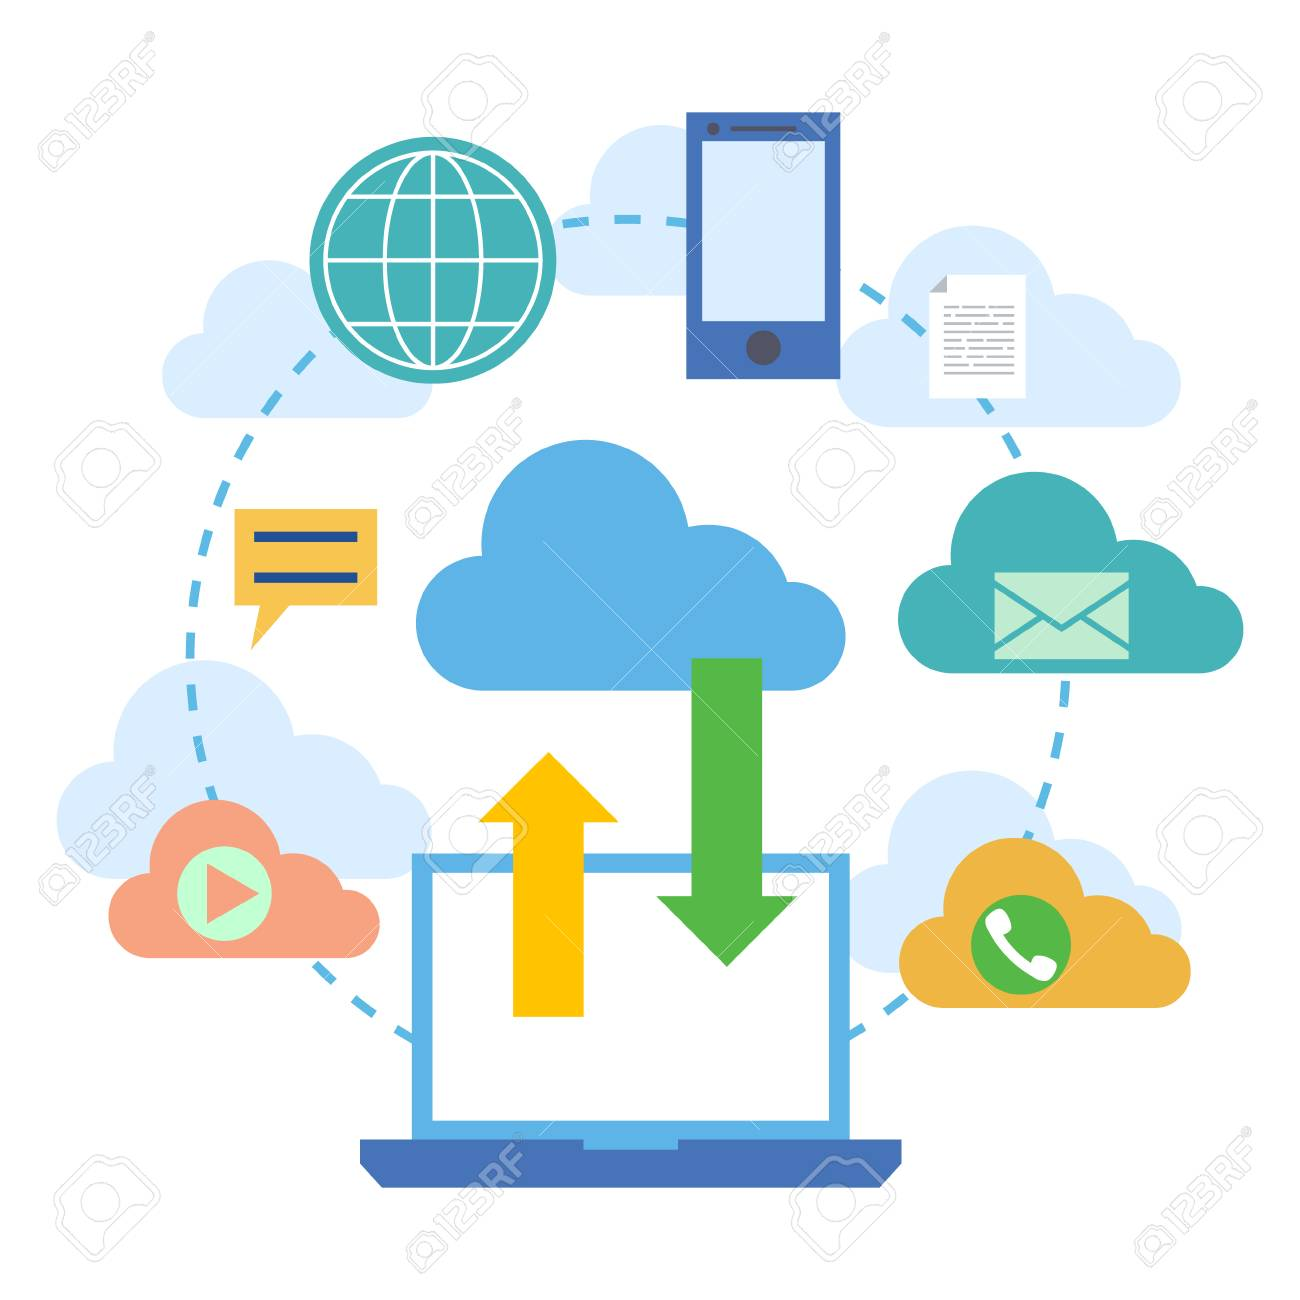 Vector   Web Banners For Cloud Computing Services And Technology, Data  Storage. Concepts For Web Design, Marketing, And Graphic Design. Vector  Illustration